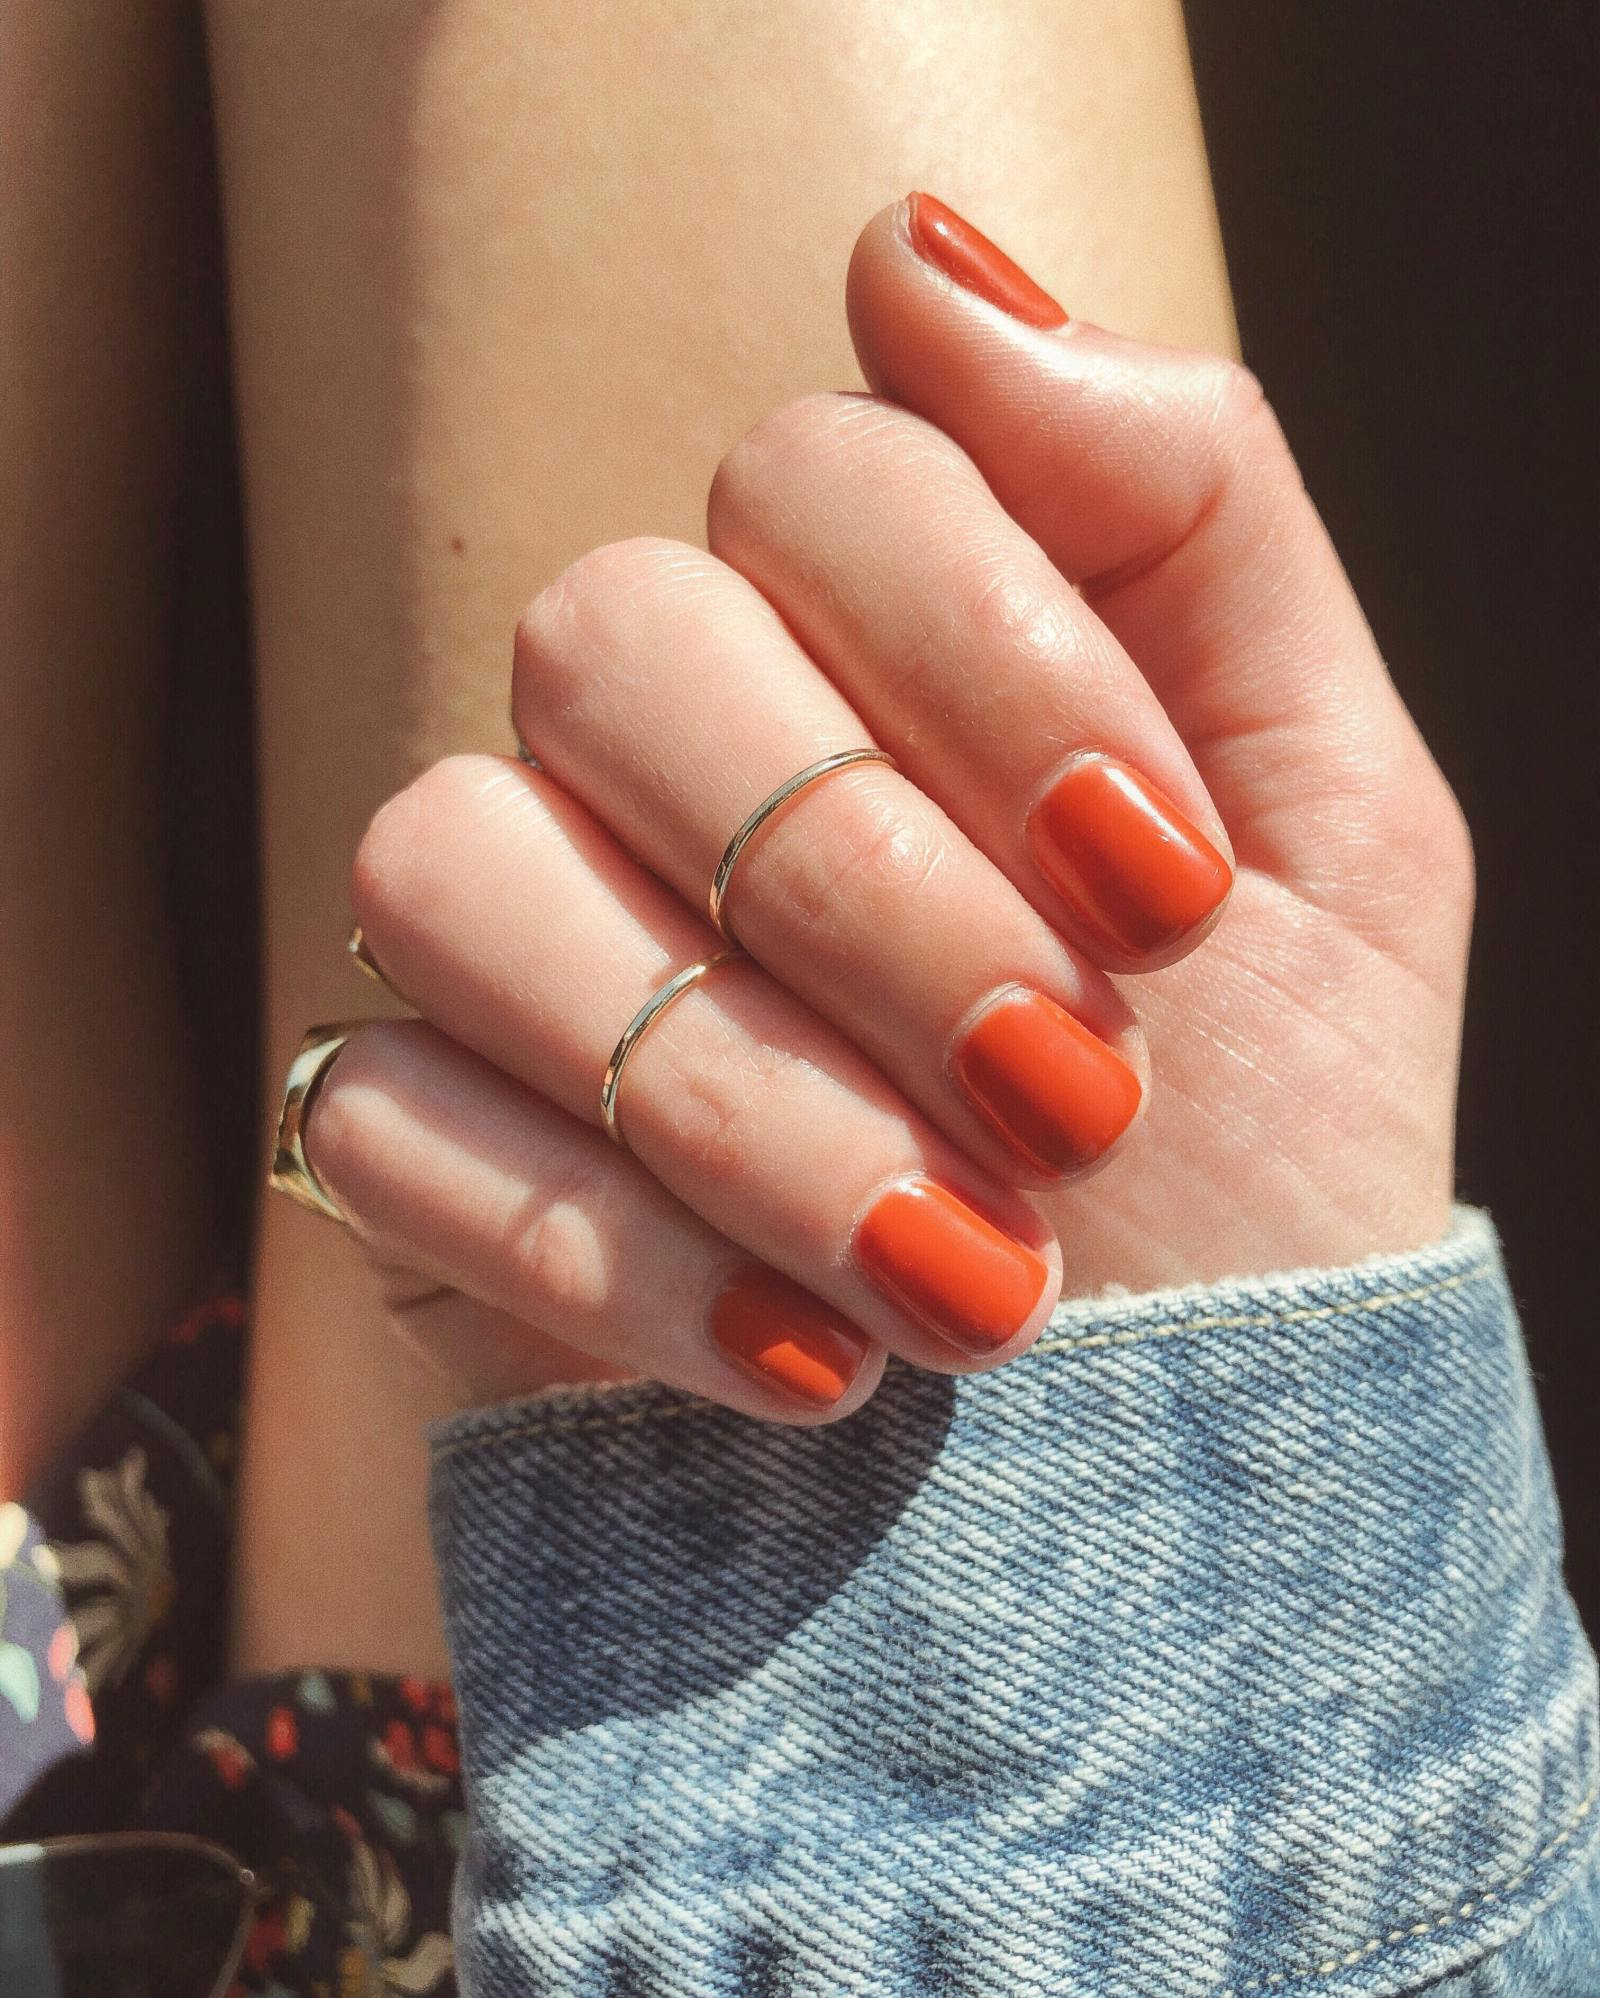 Nail Colors: Top 5 Spring Nail Colors